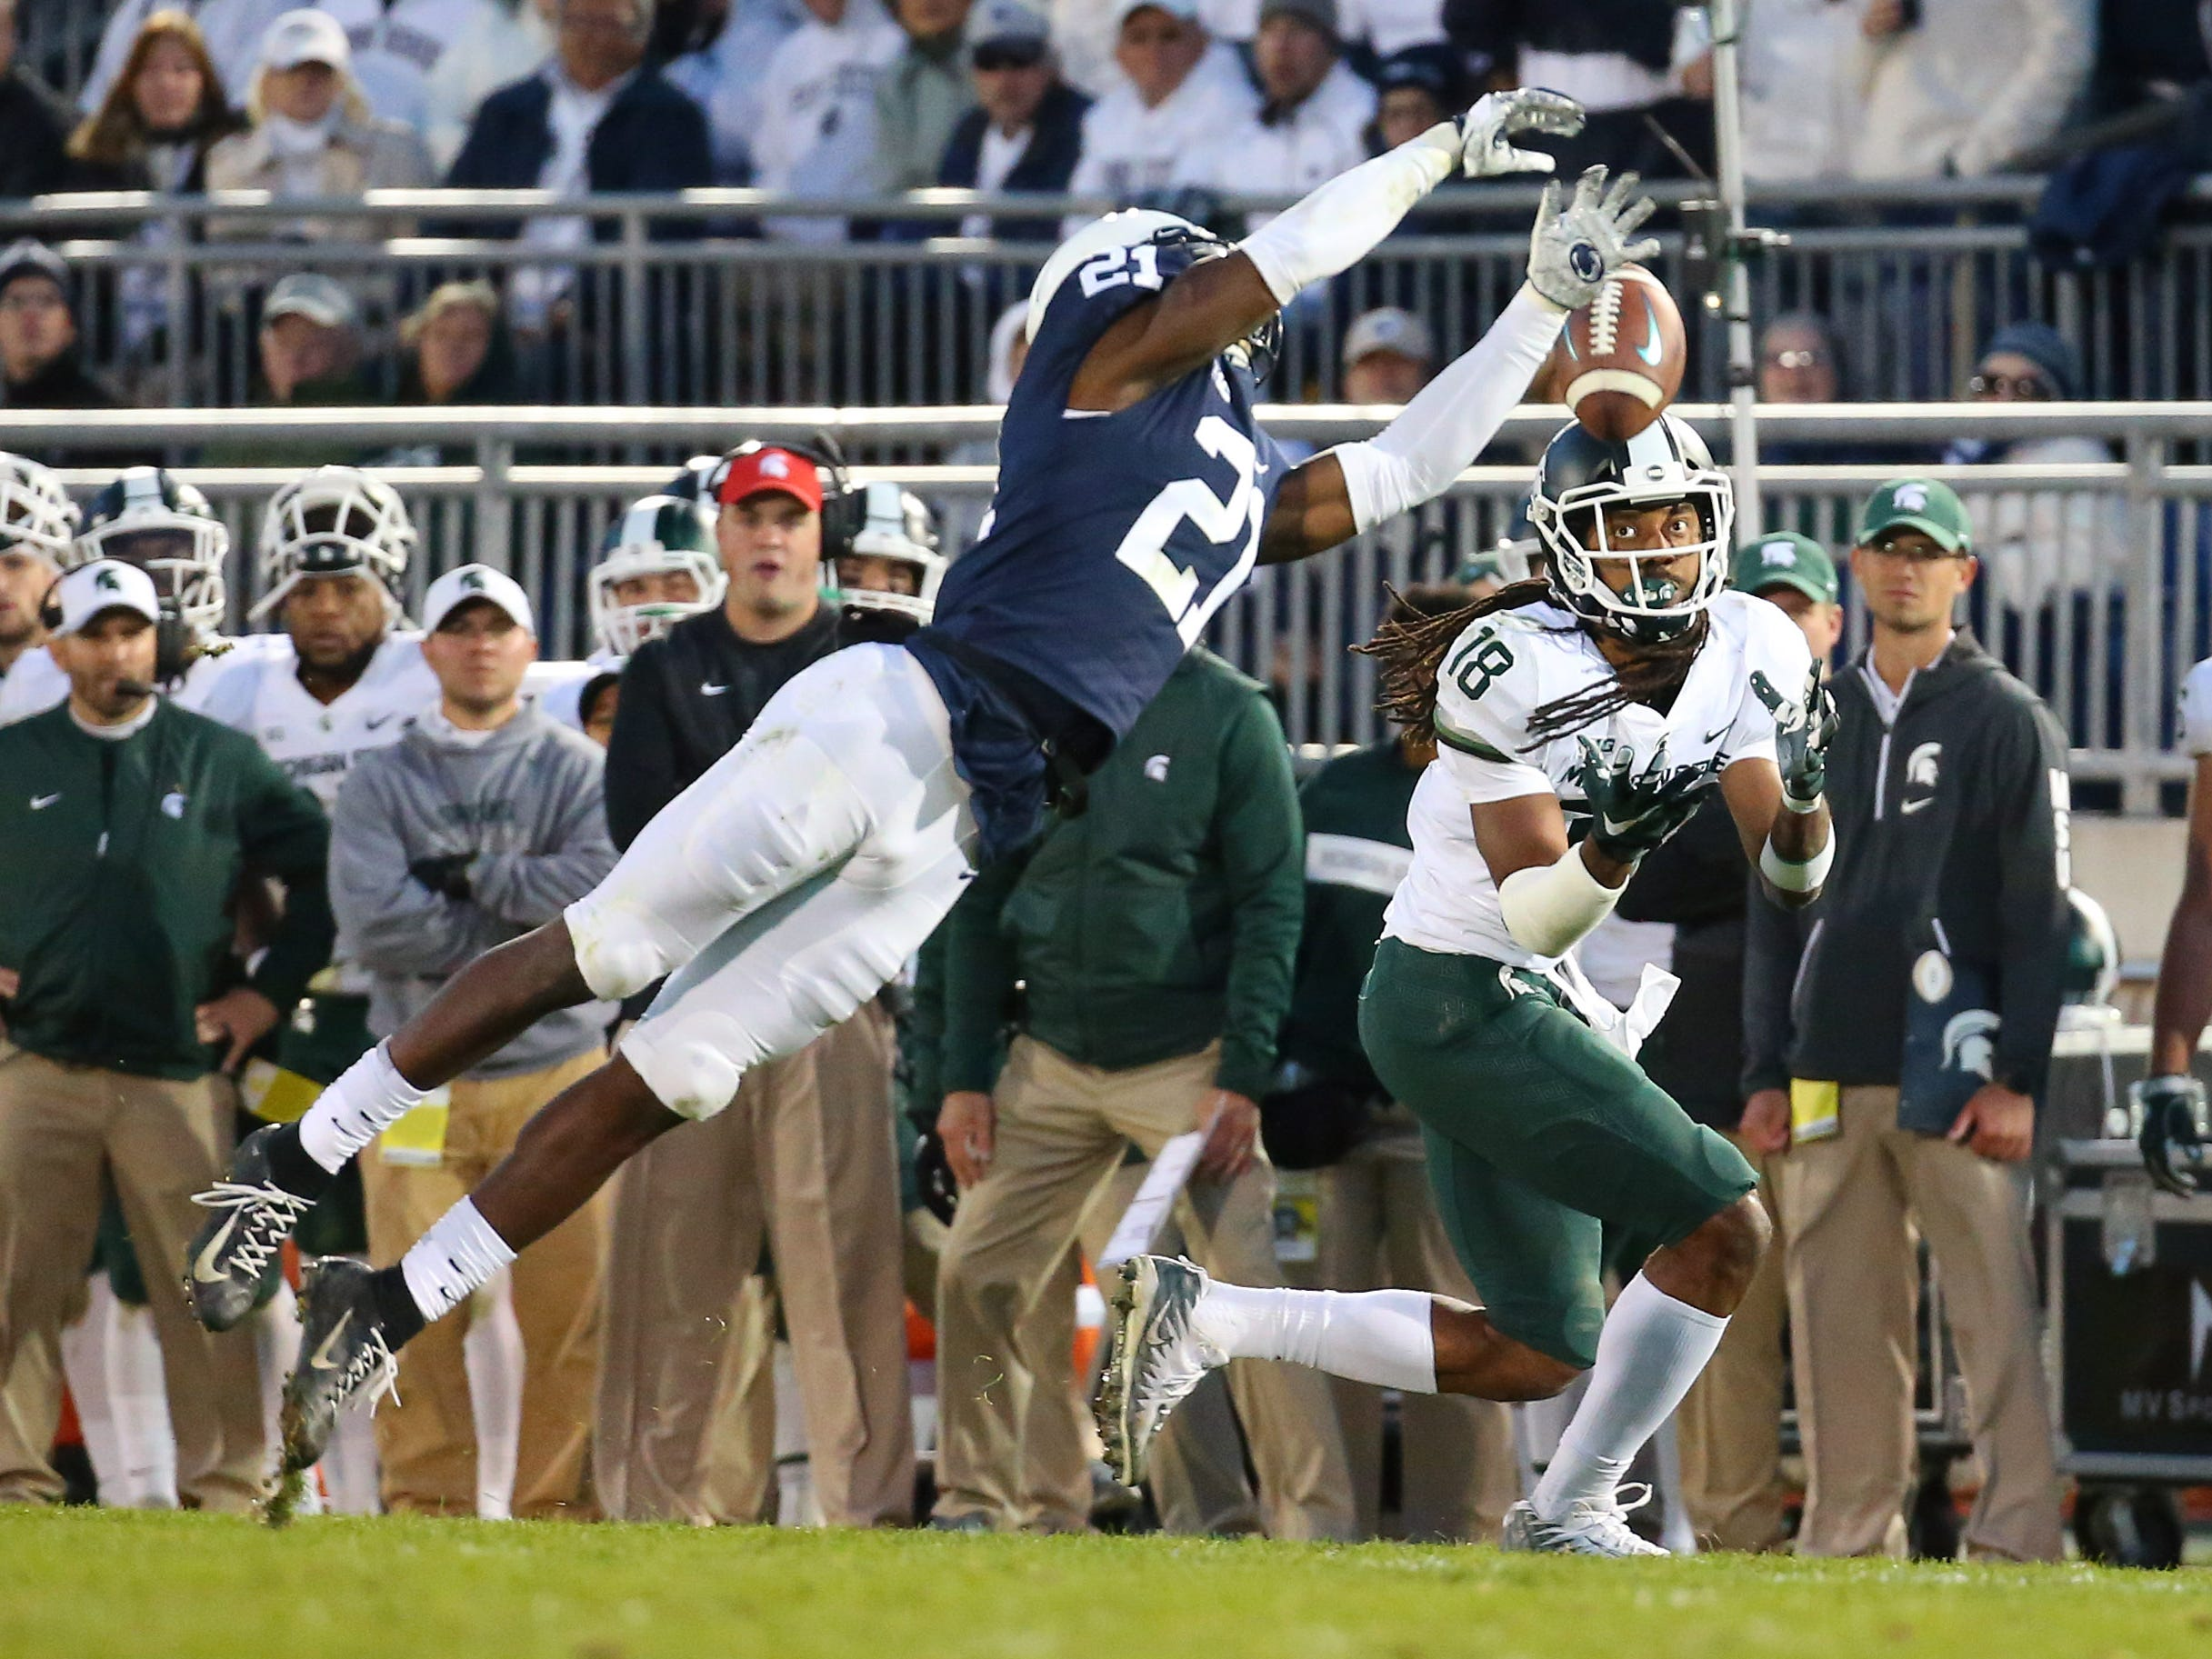 Michigan State Spartans wide receiver Felton Davis III (18) catches a pass against Penn State Nittany Lions cornerback Amani Oruwariye (21) during the fourth quarter at Beaver Stadium.